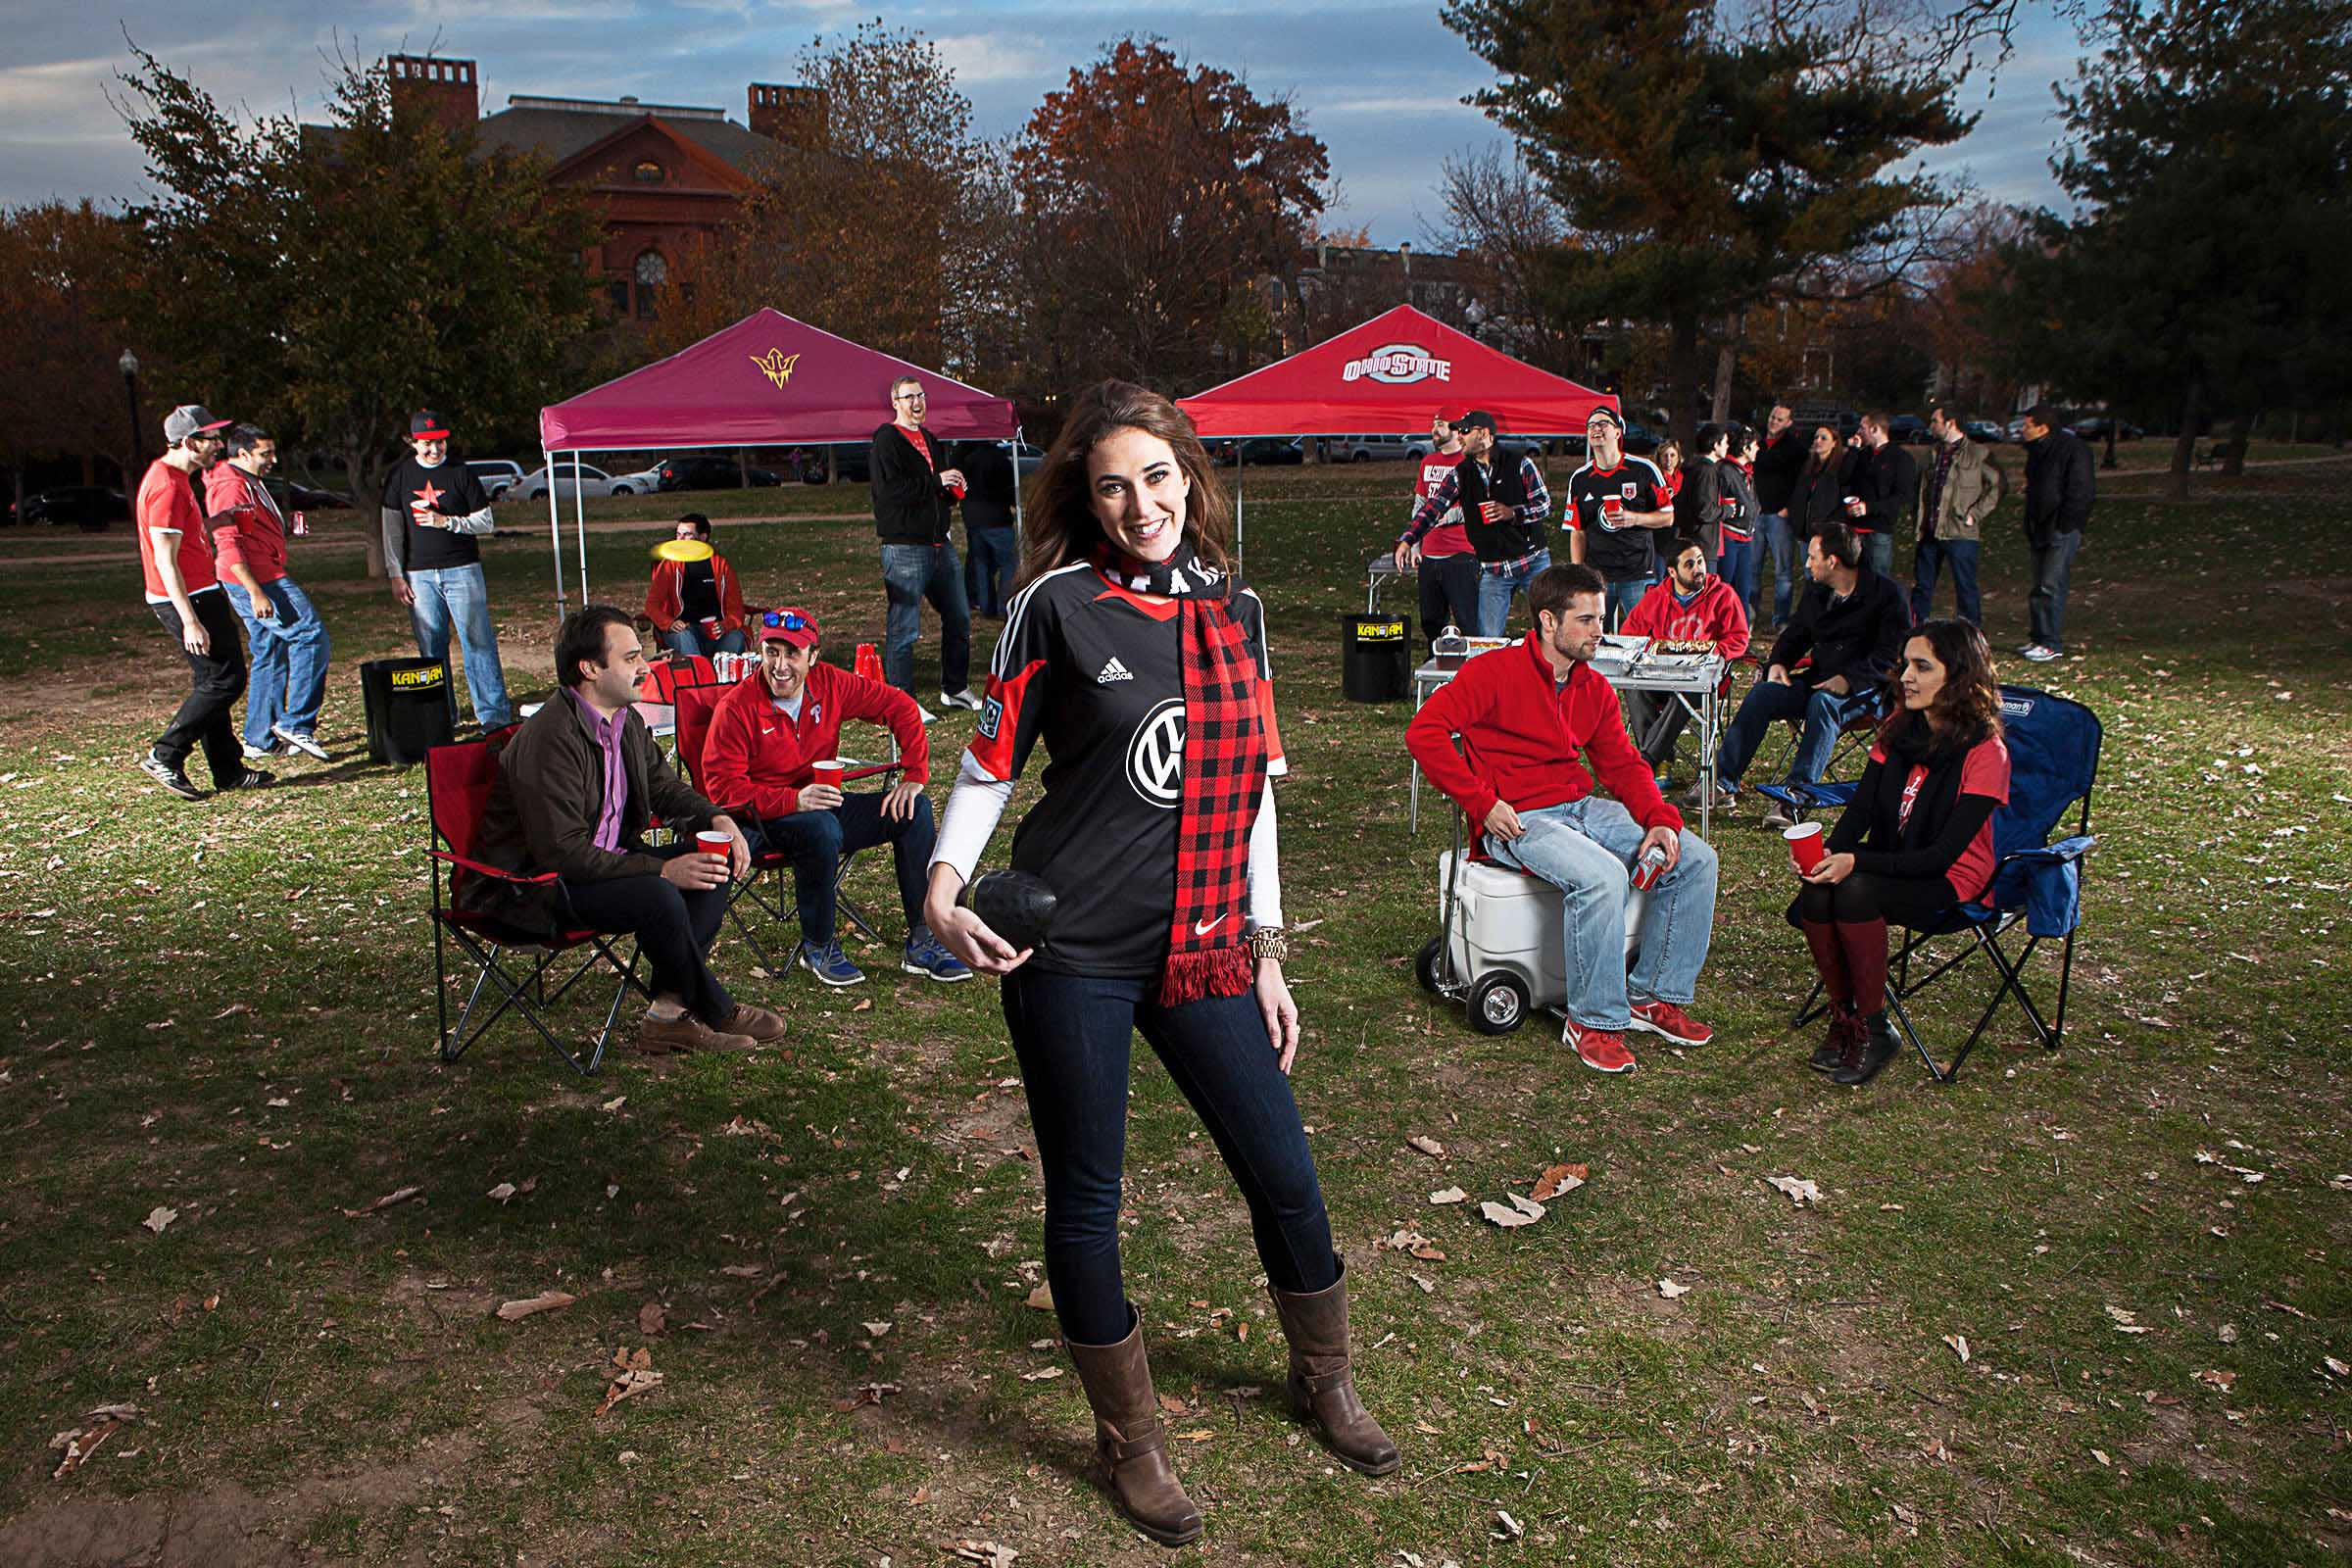 The Tailgater